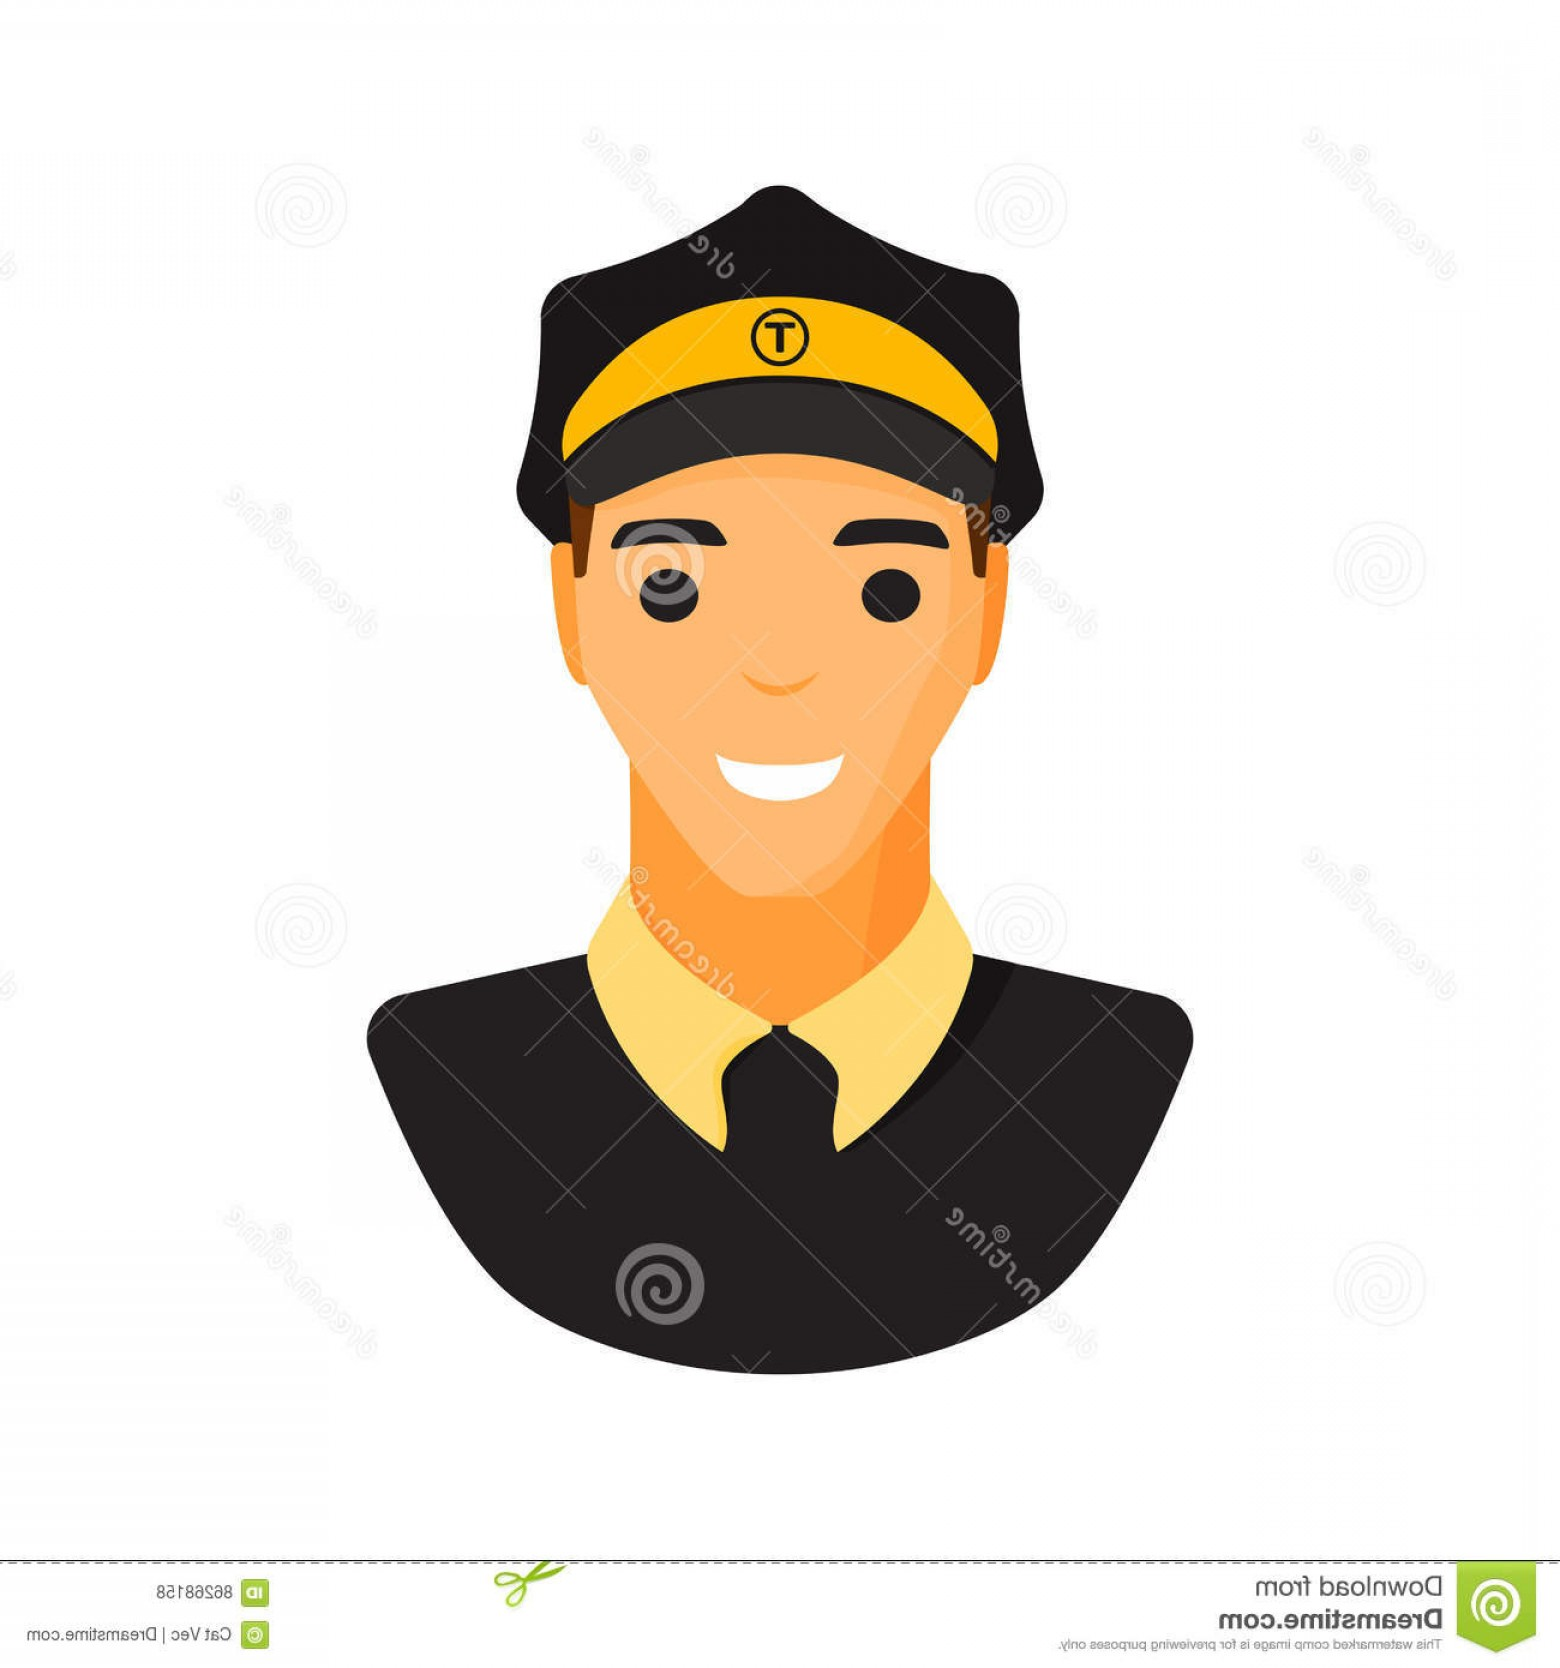 Chauffer Driver Cap Vector: Stock Illustration Limo Chauffeur Taxi Driver Character Vector Limousine Icon Flat Style Illustration Car Drive Male Service Image